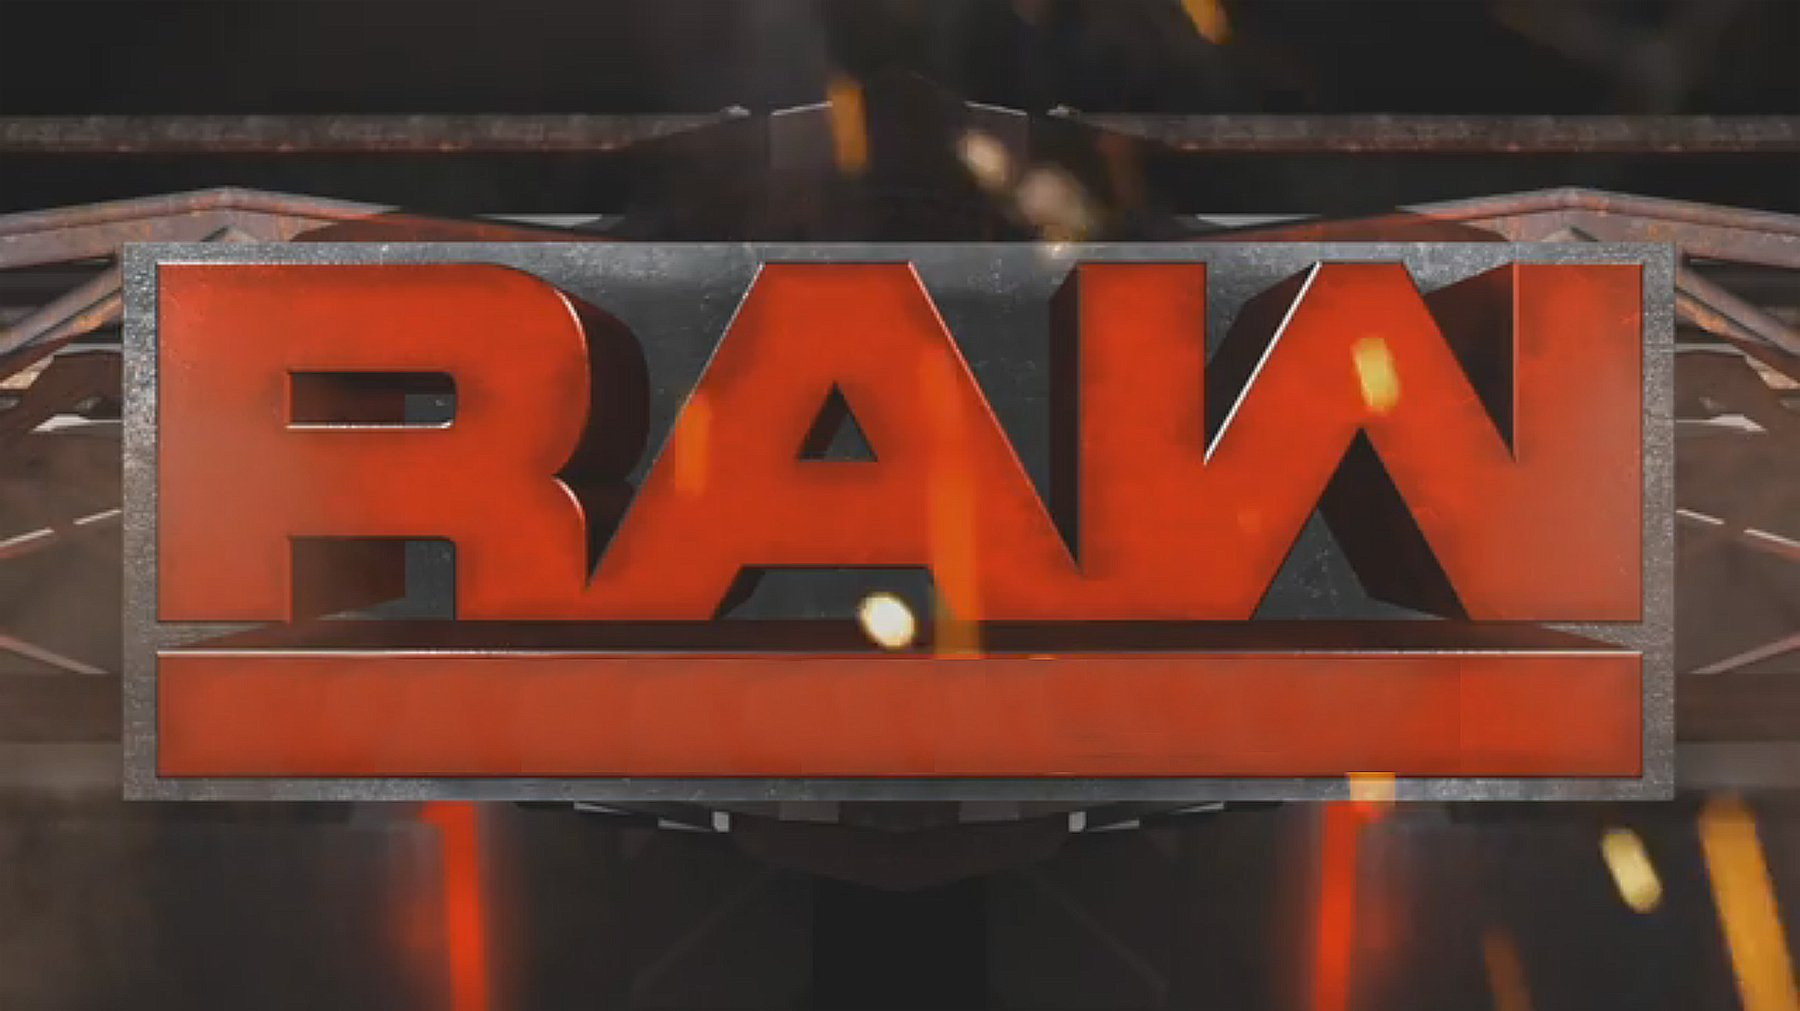 wwe raw Wwe raw 13,659,885 likes 112,343 talking about this the official facebook fan page of wwe monday night raw watch 3 hours of raw every monday night.